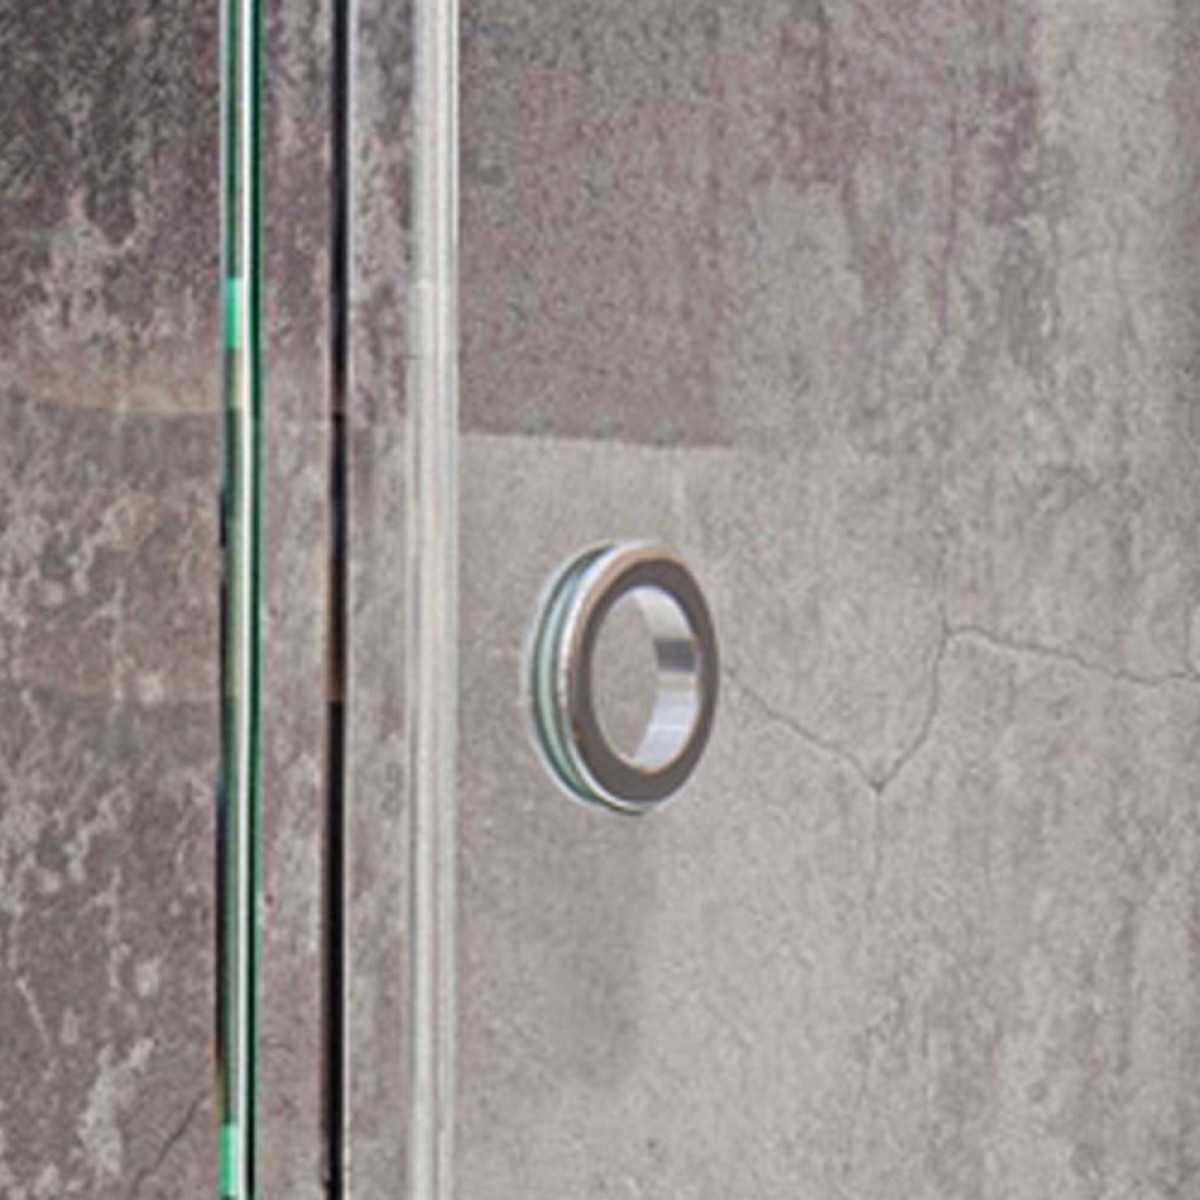 Roman Decem Sliding Door 1200 X 800mm Corner Fitting With